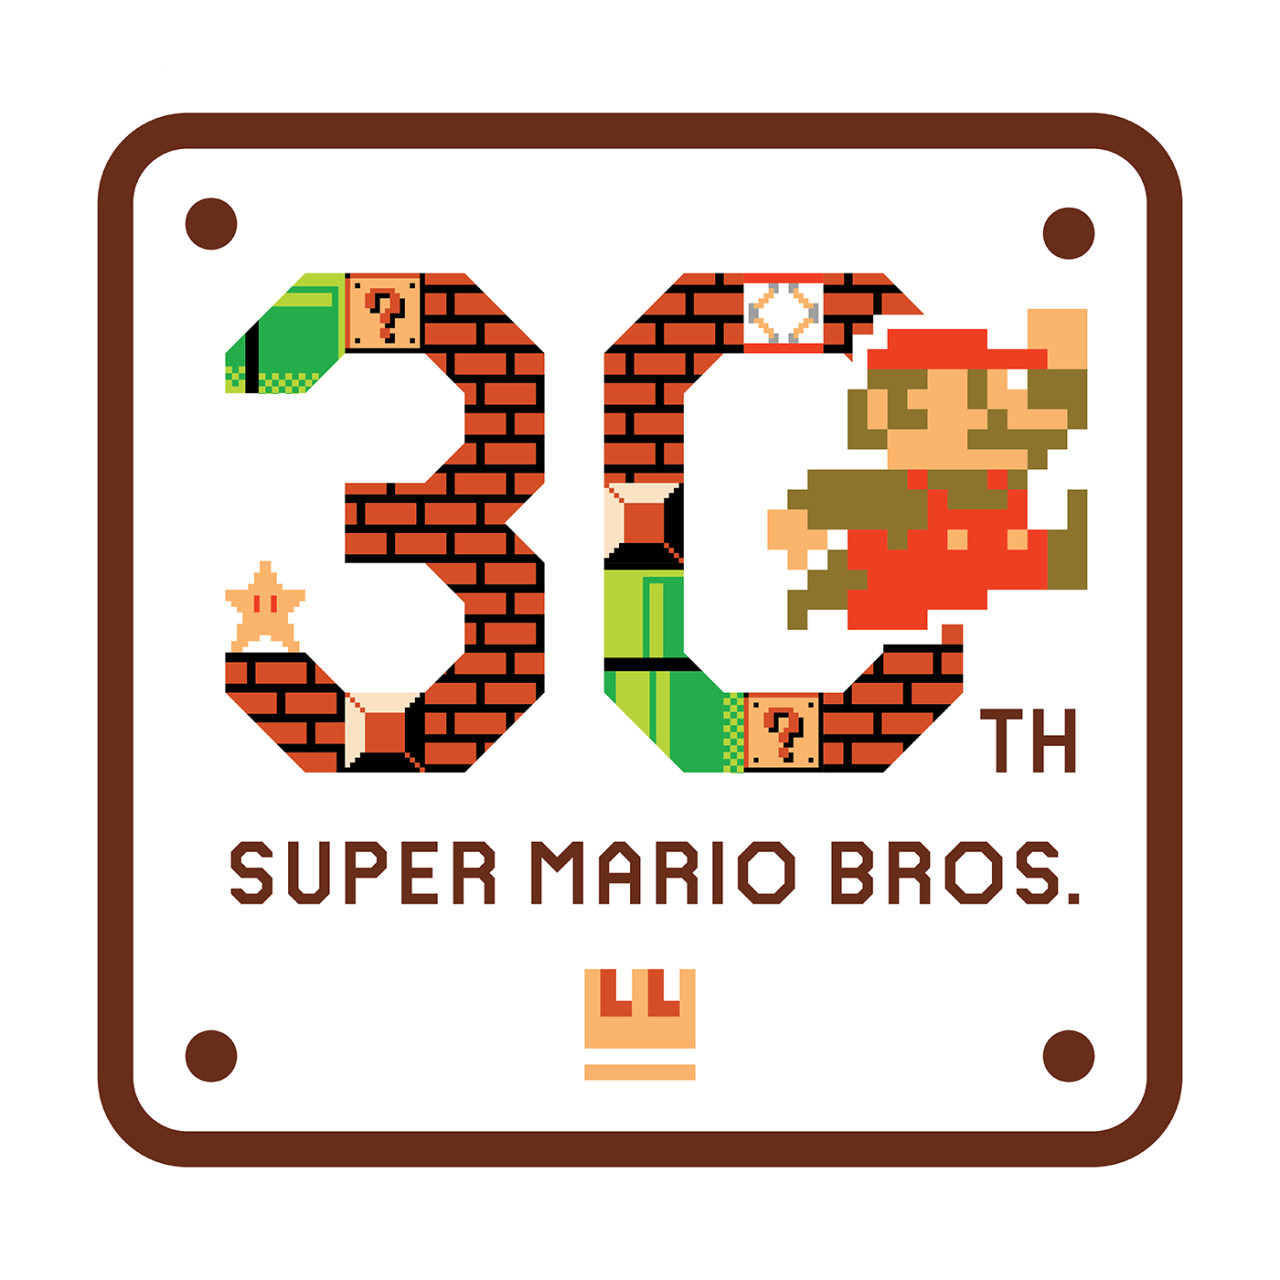 https://vignette.wikia.nocookie.net/videogames-fanon/images/2/2f/Mario_30th_Anniversary_logo.png/revision/latest?cb=20160623205659